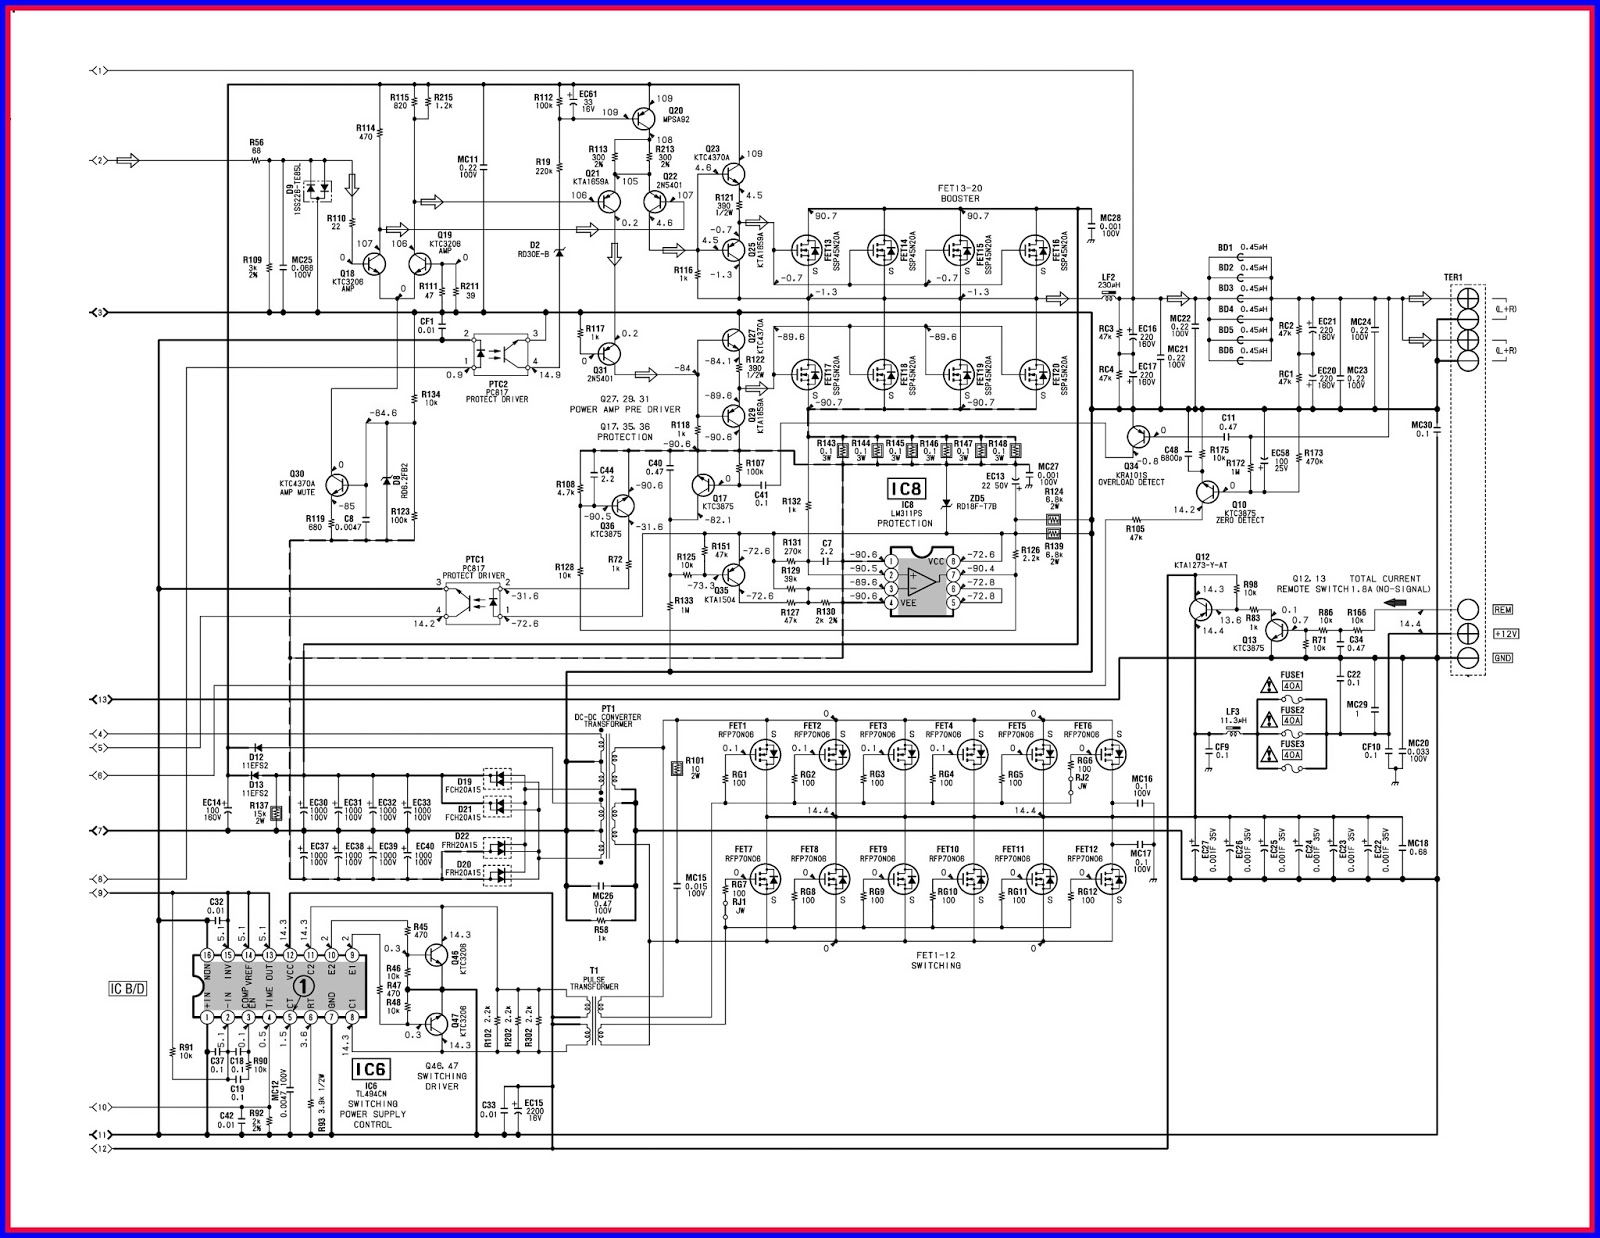 medium resolution of sony car audio amplifier wiring diagrams wiring diagram operationscar audio amp schematic 19